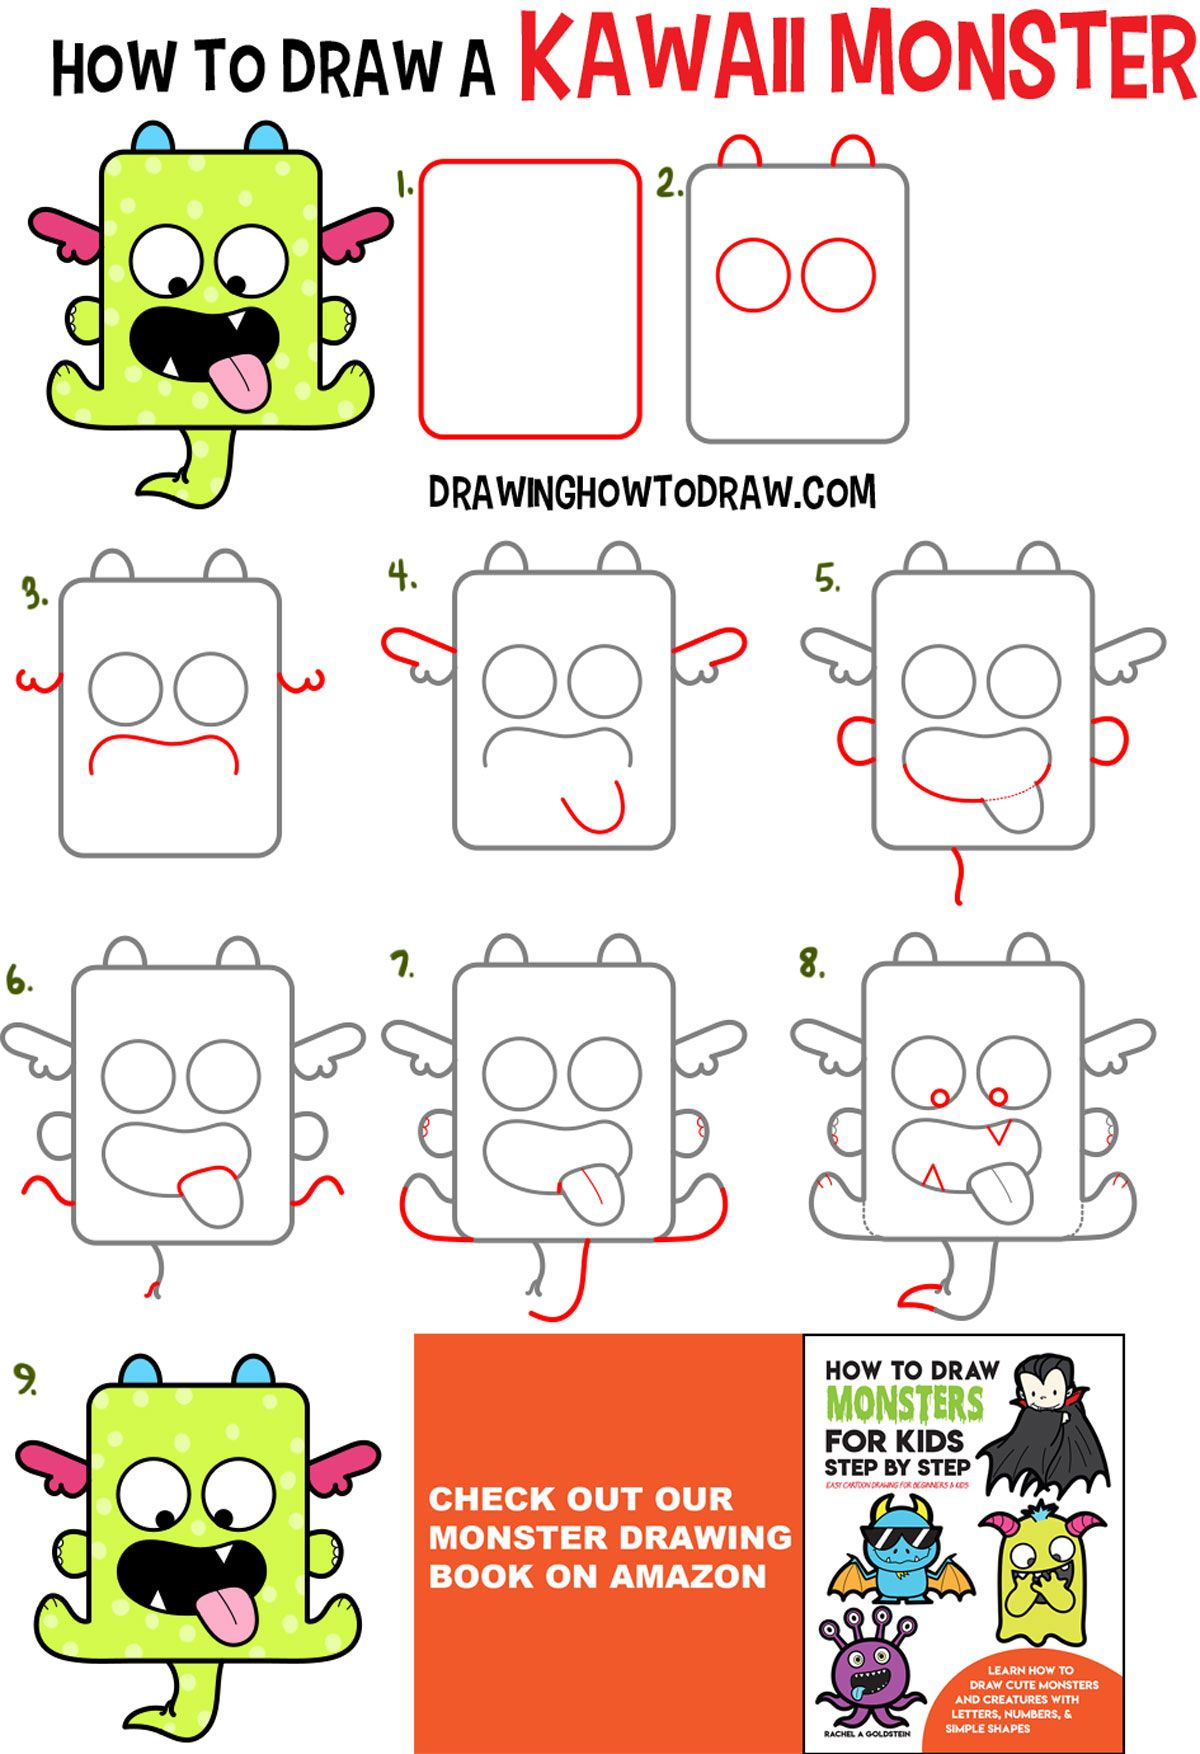 How To Draw A Cute Kawaii Monster With Easy Step By Step Drawing